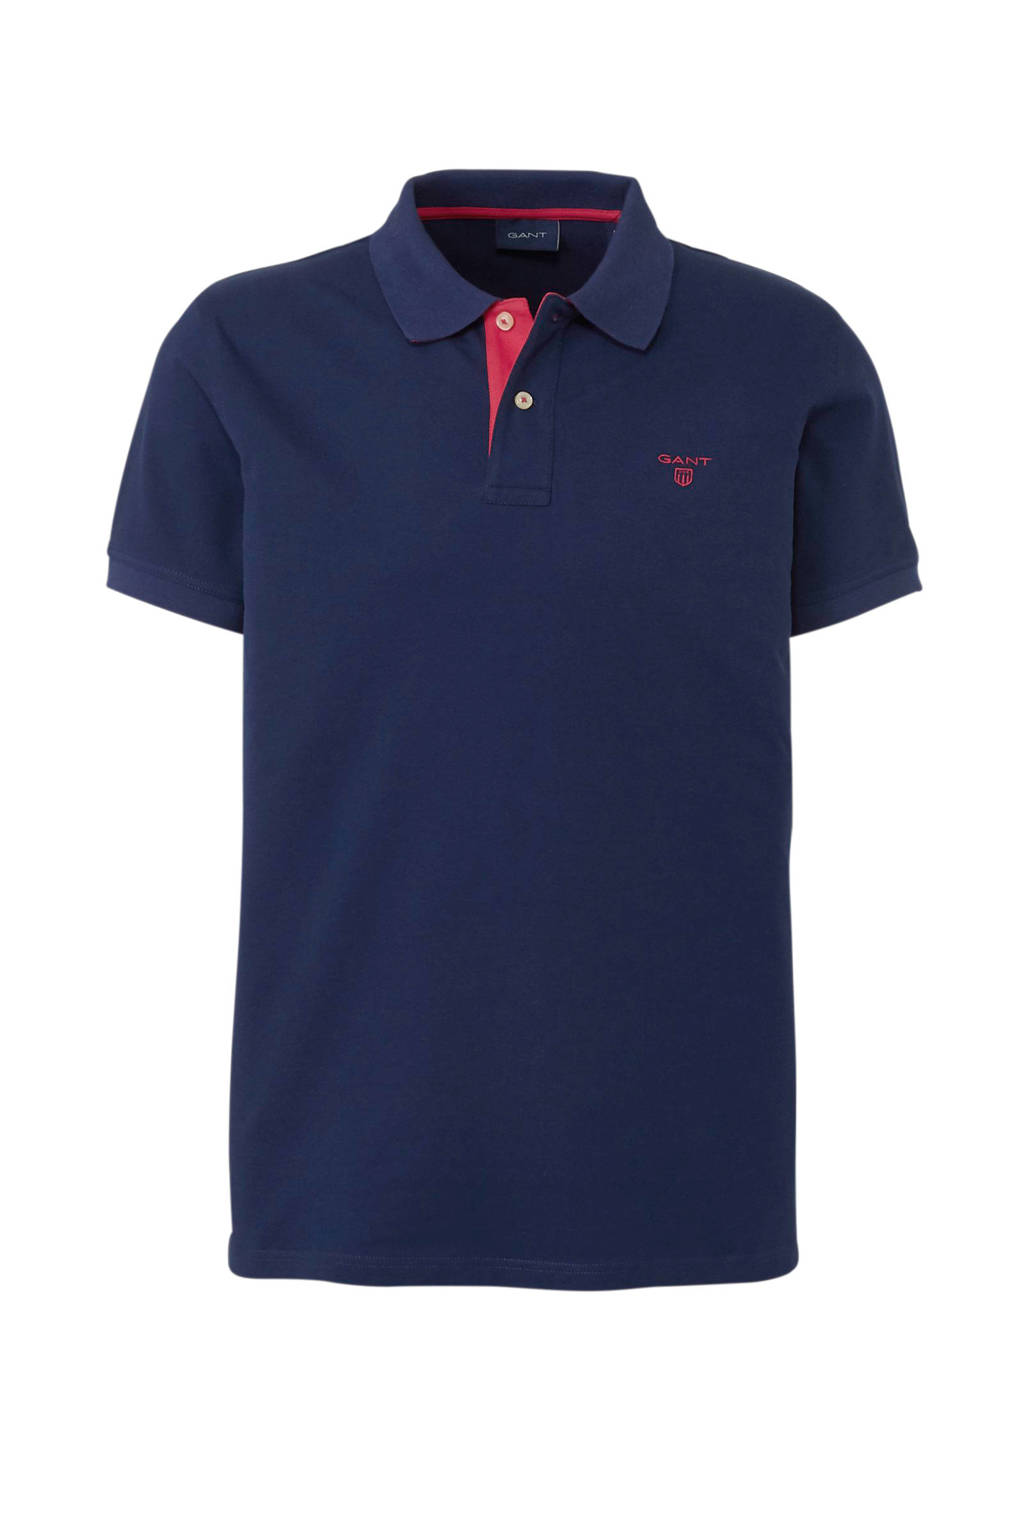 GANT regular fit polo donkerblauw, Donkerblauw